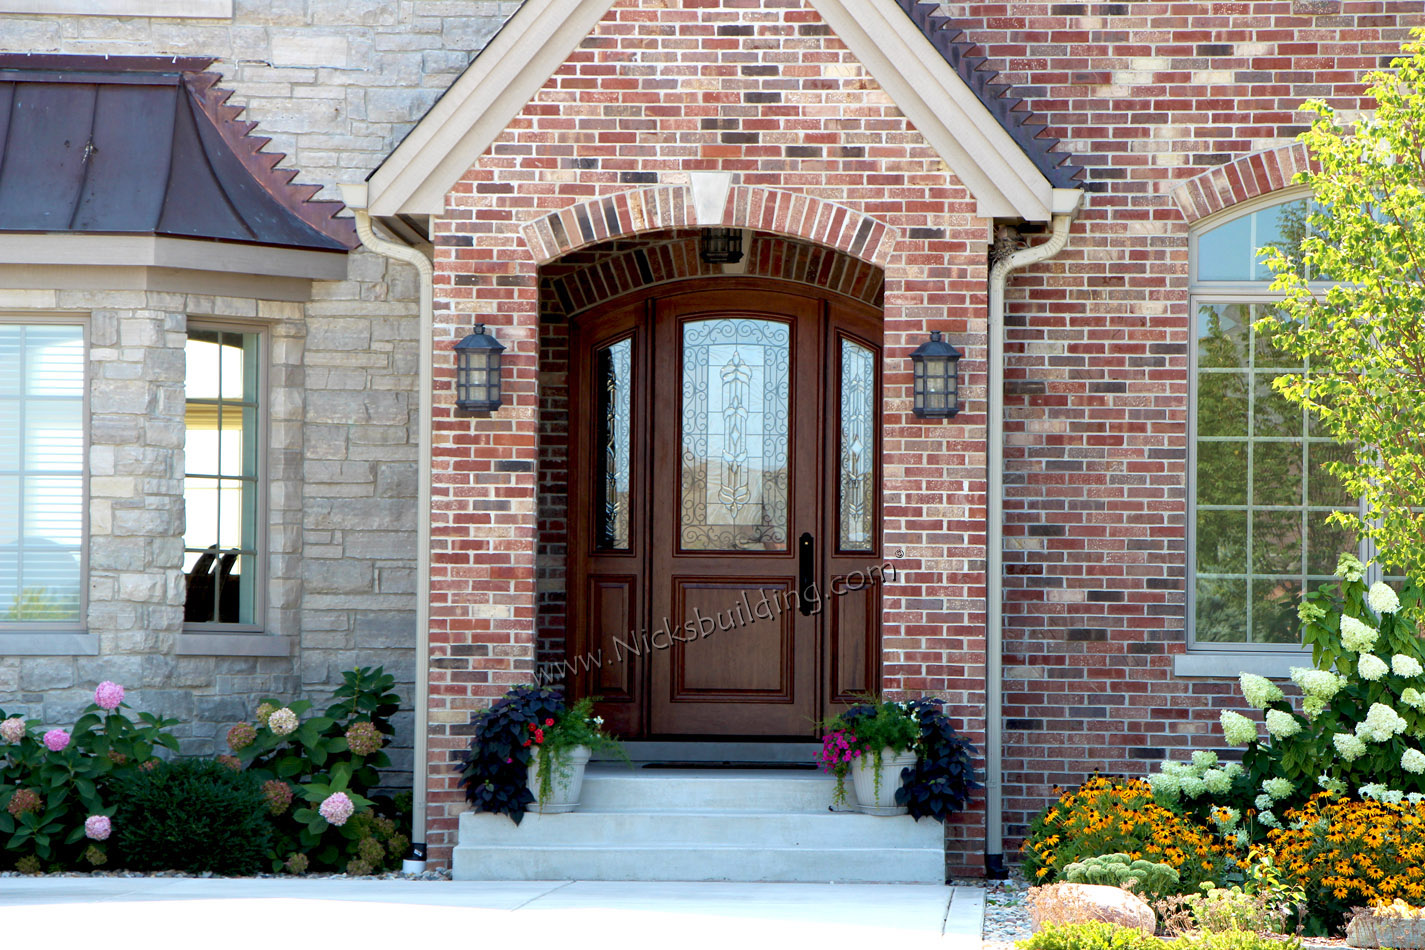 950 #426F89 Exterior Door Gallery Wooden Door Pictures image Arched Wood Entry Doors 40831425